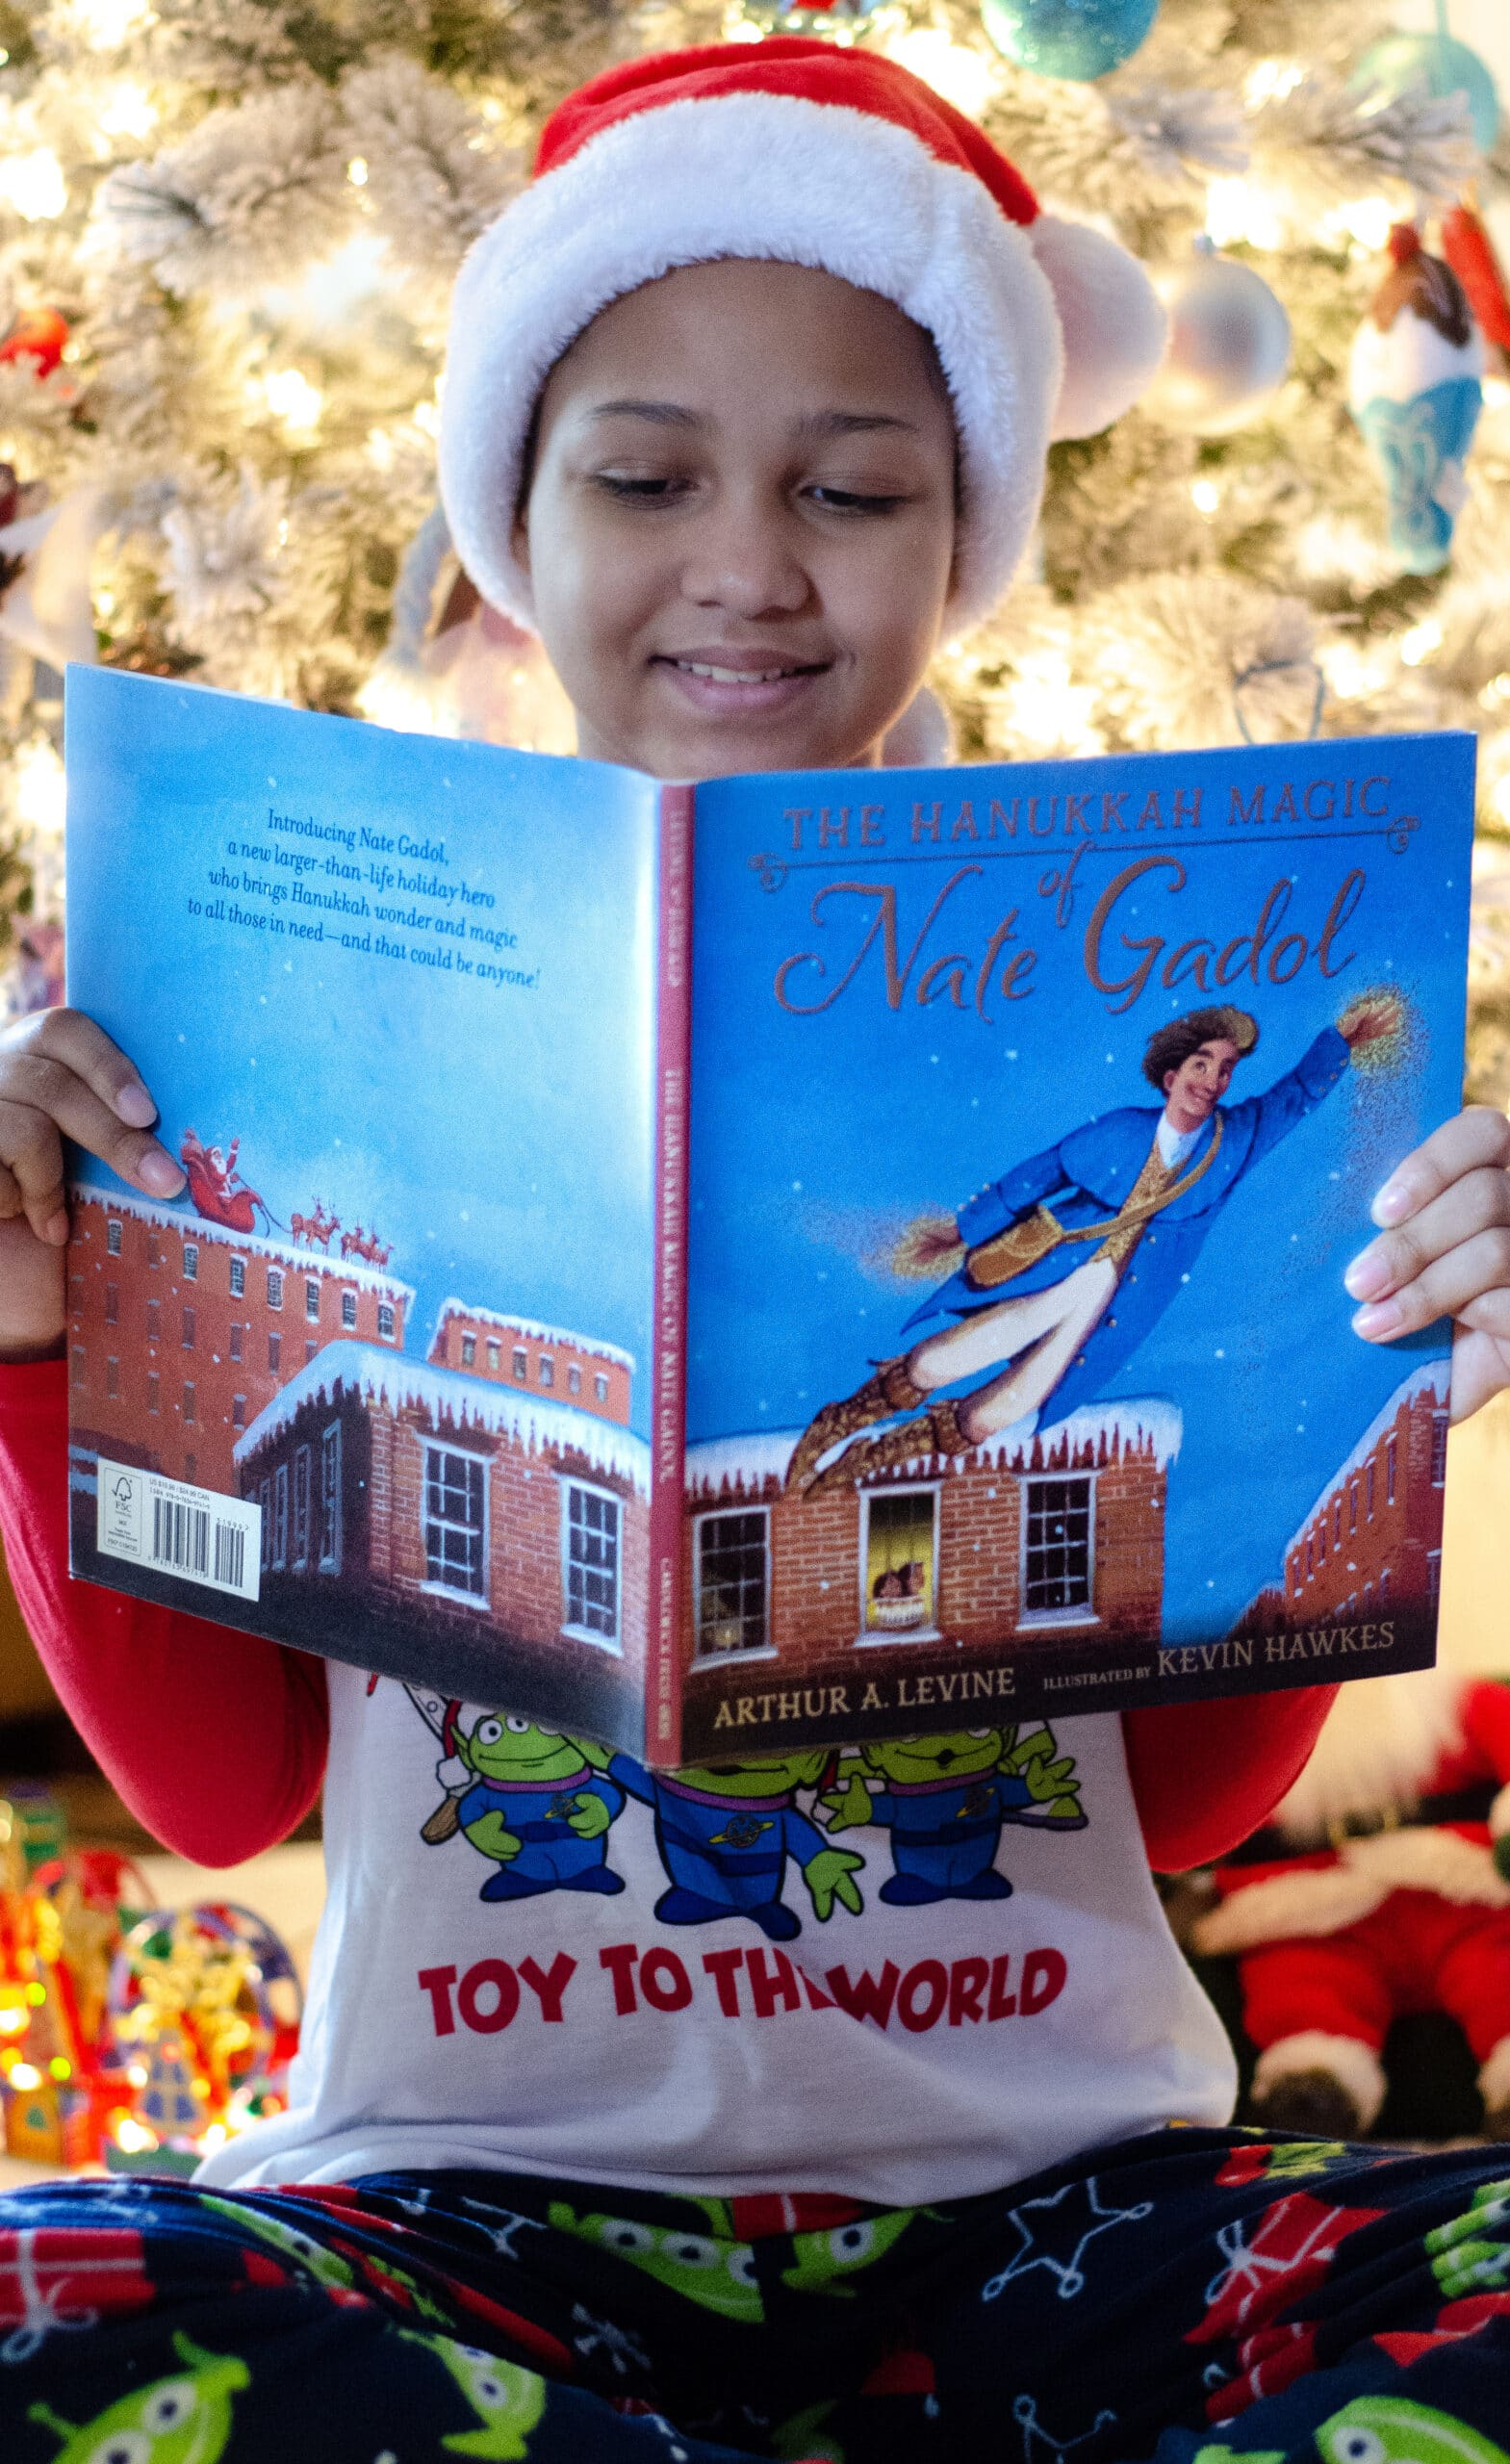 Keke Reading Hanukkah Magic of Nate Gadol. Give the gift of literature this holiday season! These wonderful holiday books for kids make great stocking stuffer gifts. Create your very own Christmas Tree Advent Calander using these Children's holiday books, simply stack them into a tree for a new fun holiday tradition.